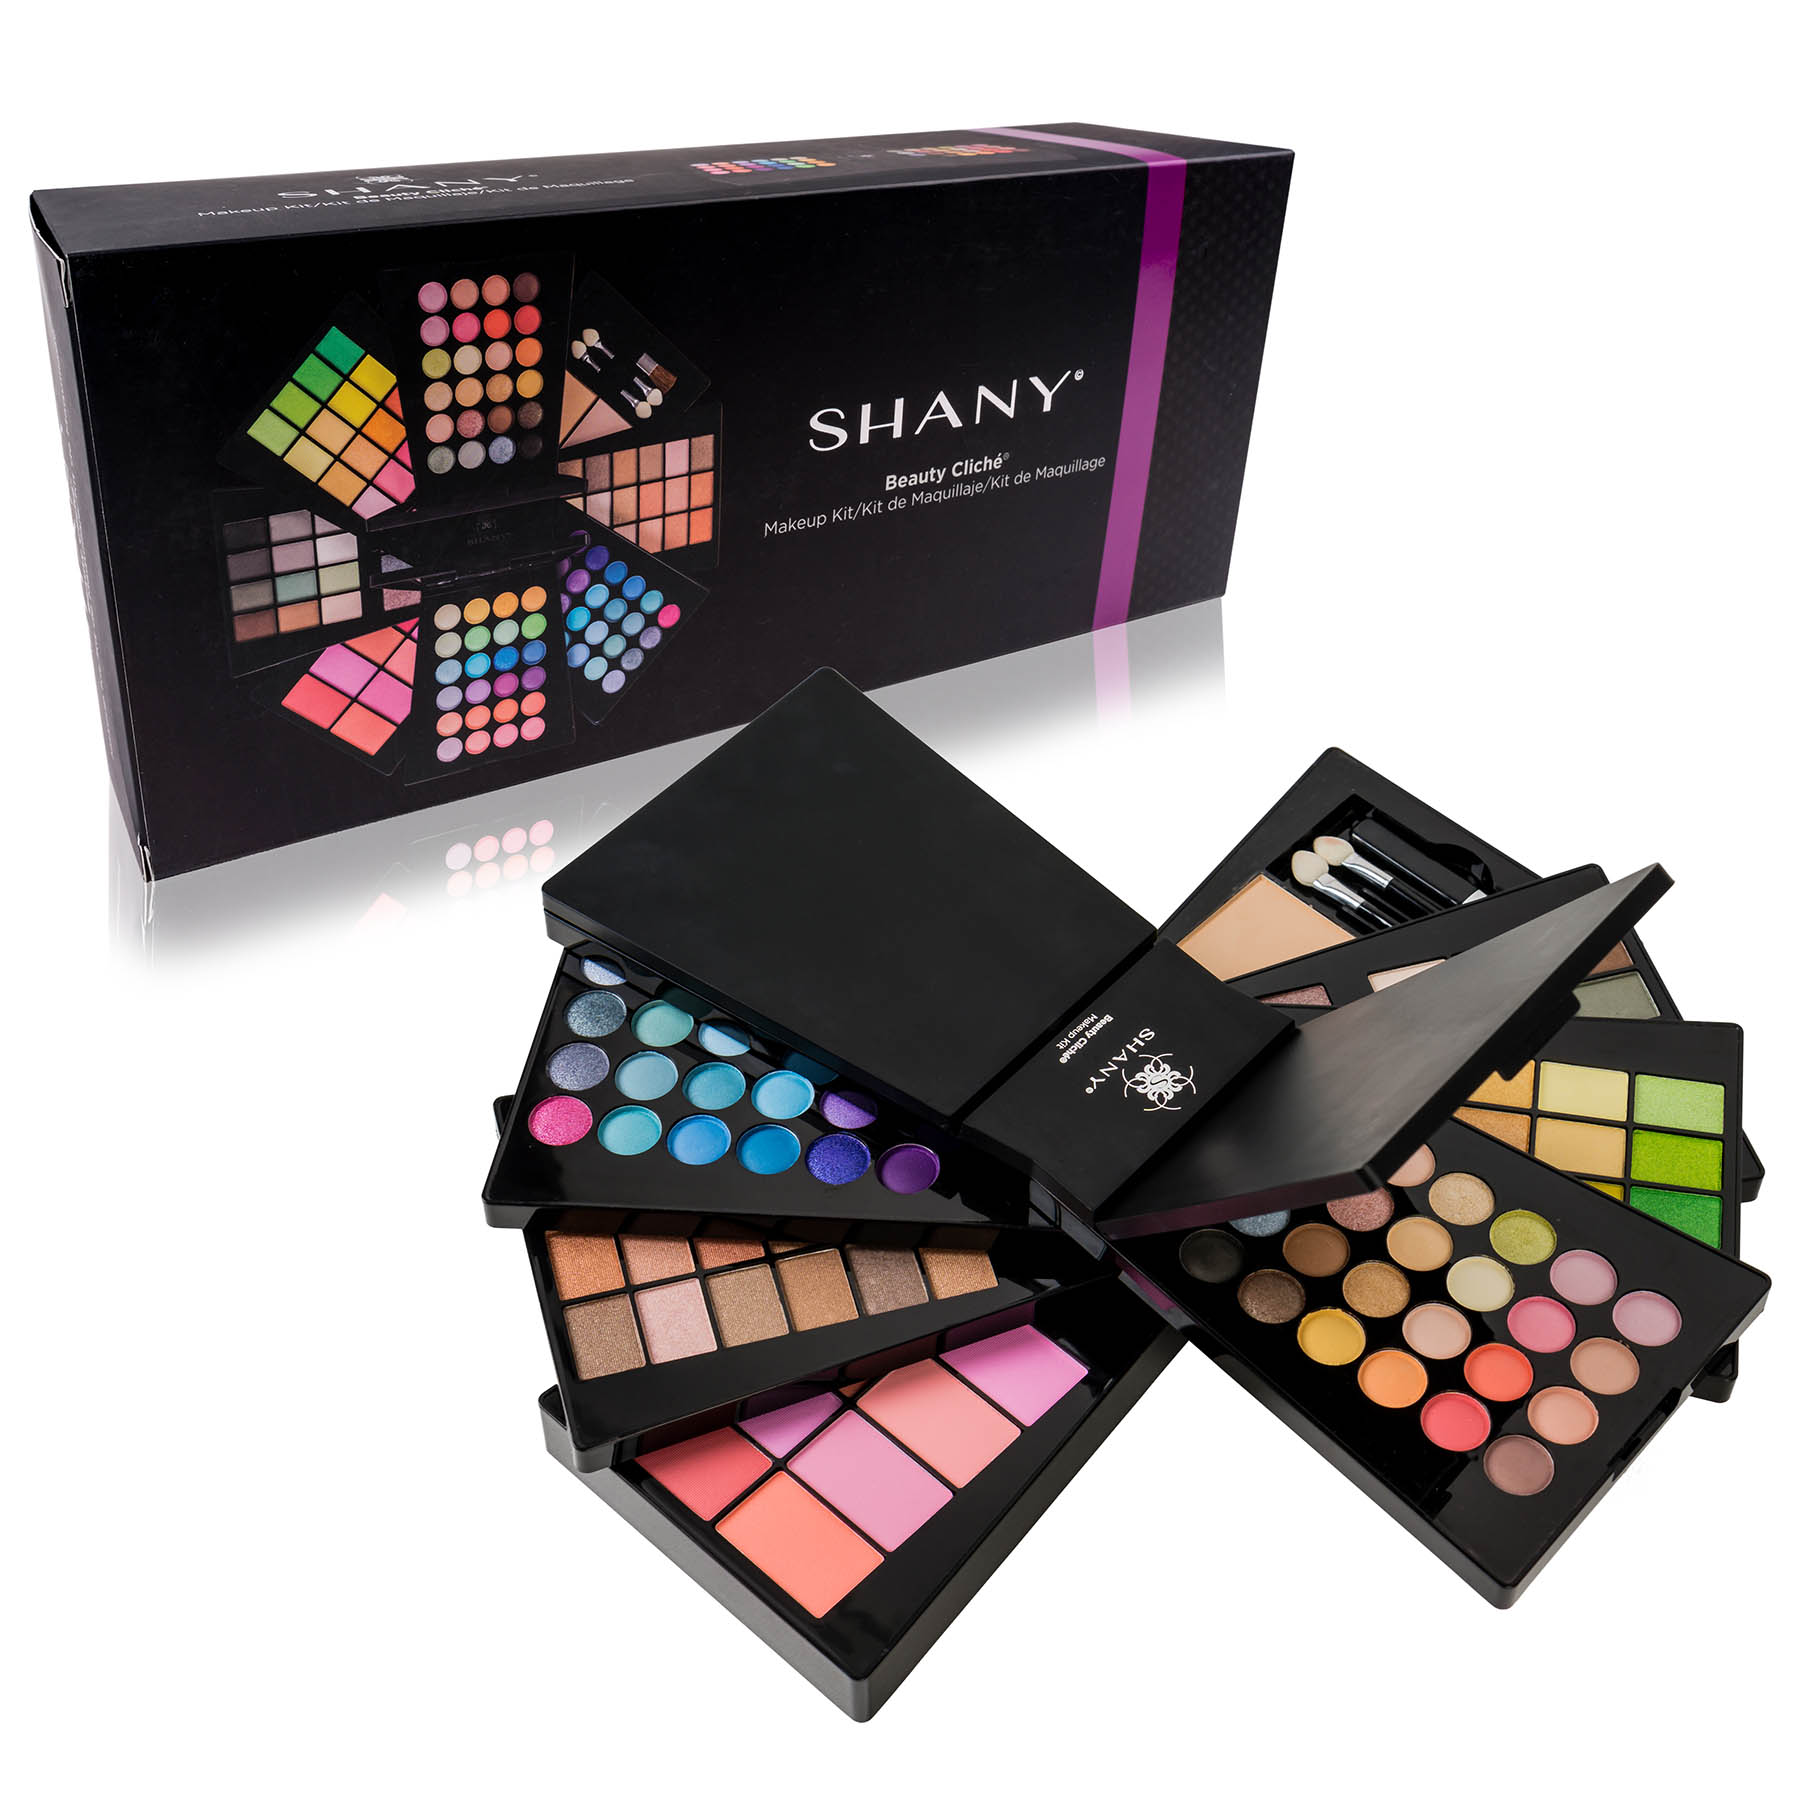 The SHANY Beauty Cliche - Makeup Palette - All-in-One Makeup Set with Eyeshadows, Face Powders, and Blushes - Walmart.com